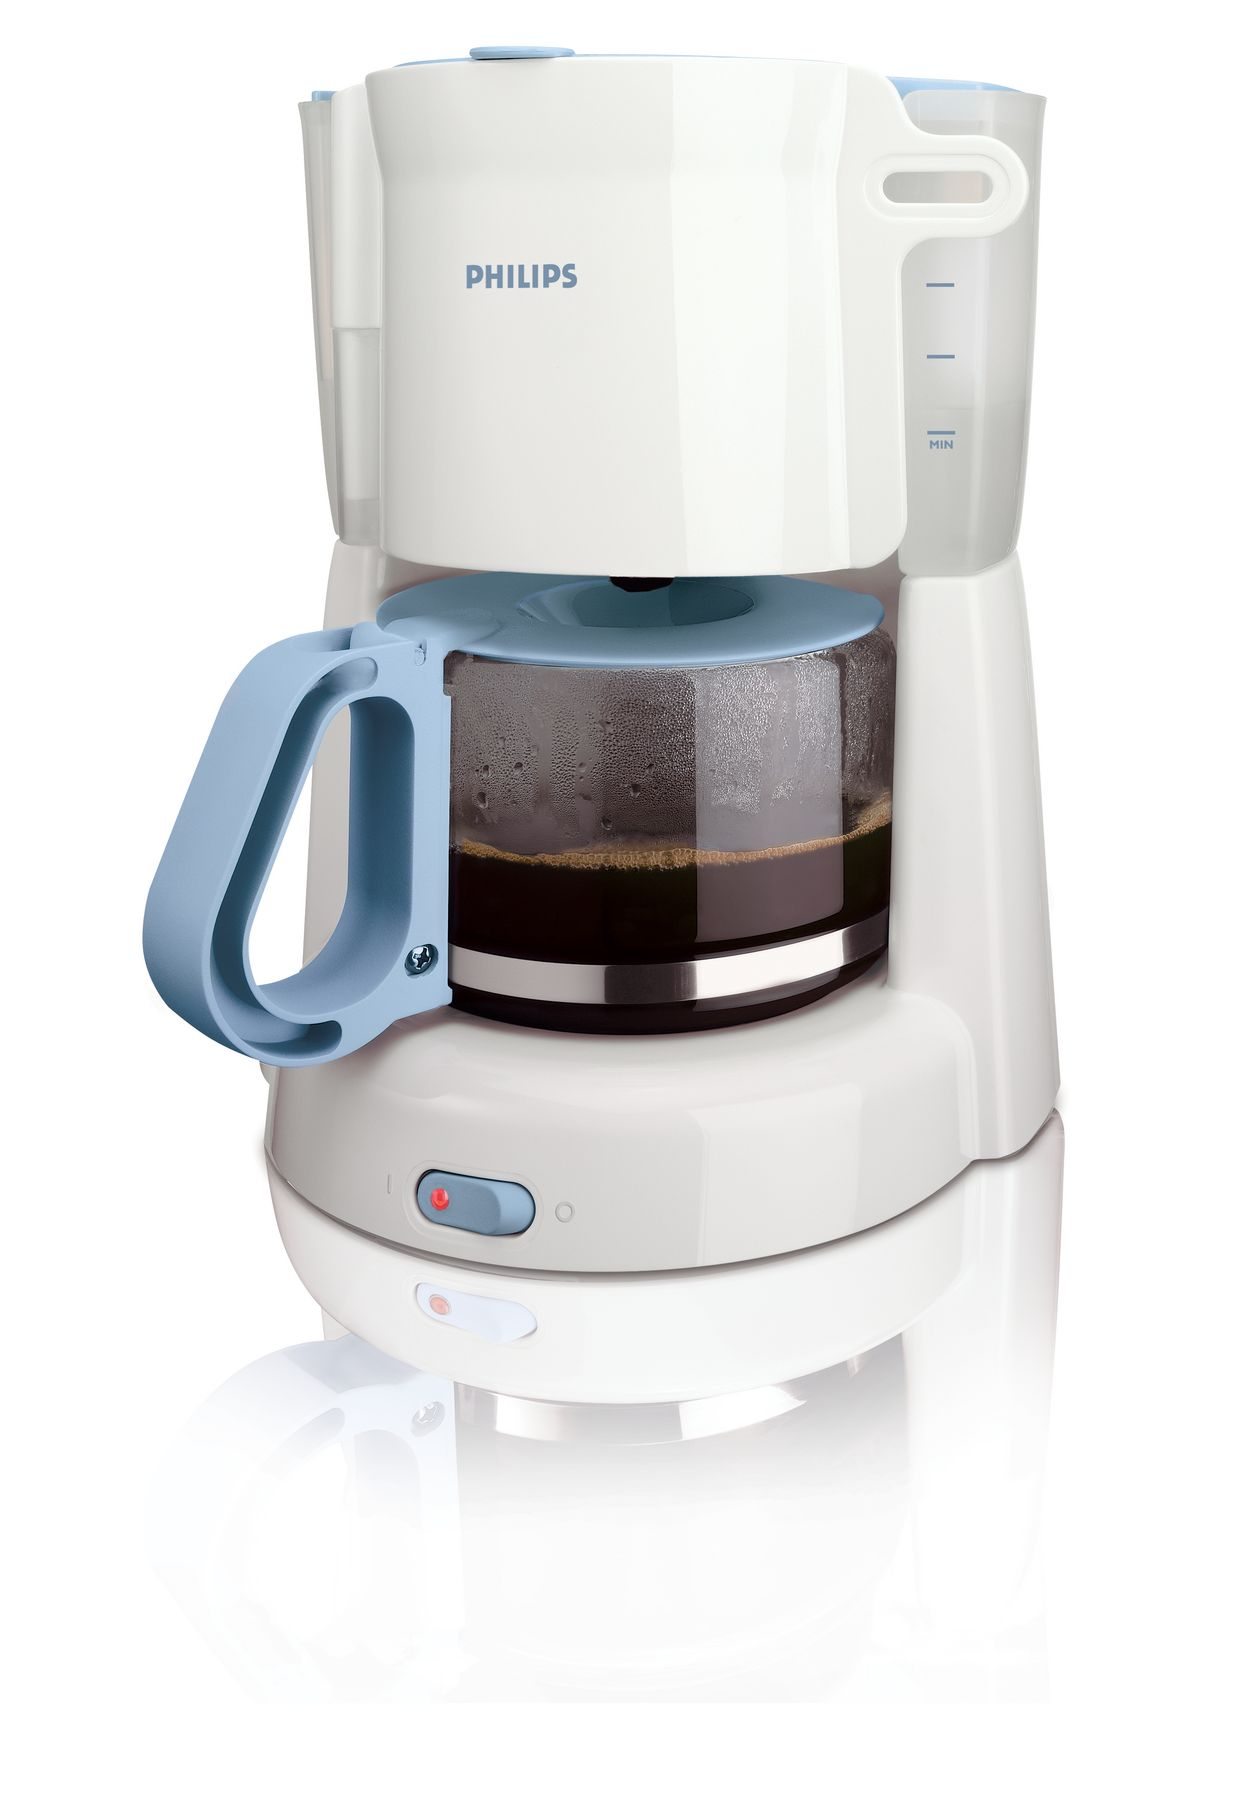 Philips Coffee Maker Hd 7546/20 : Coffee maker HD7466/70 Philips